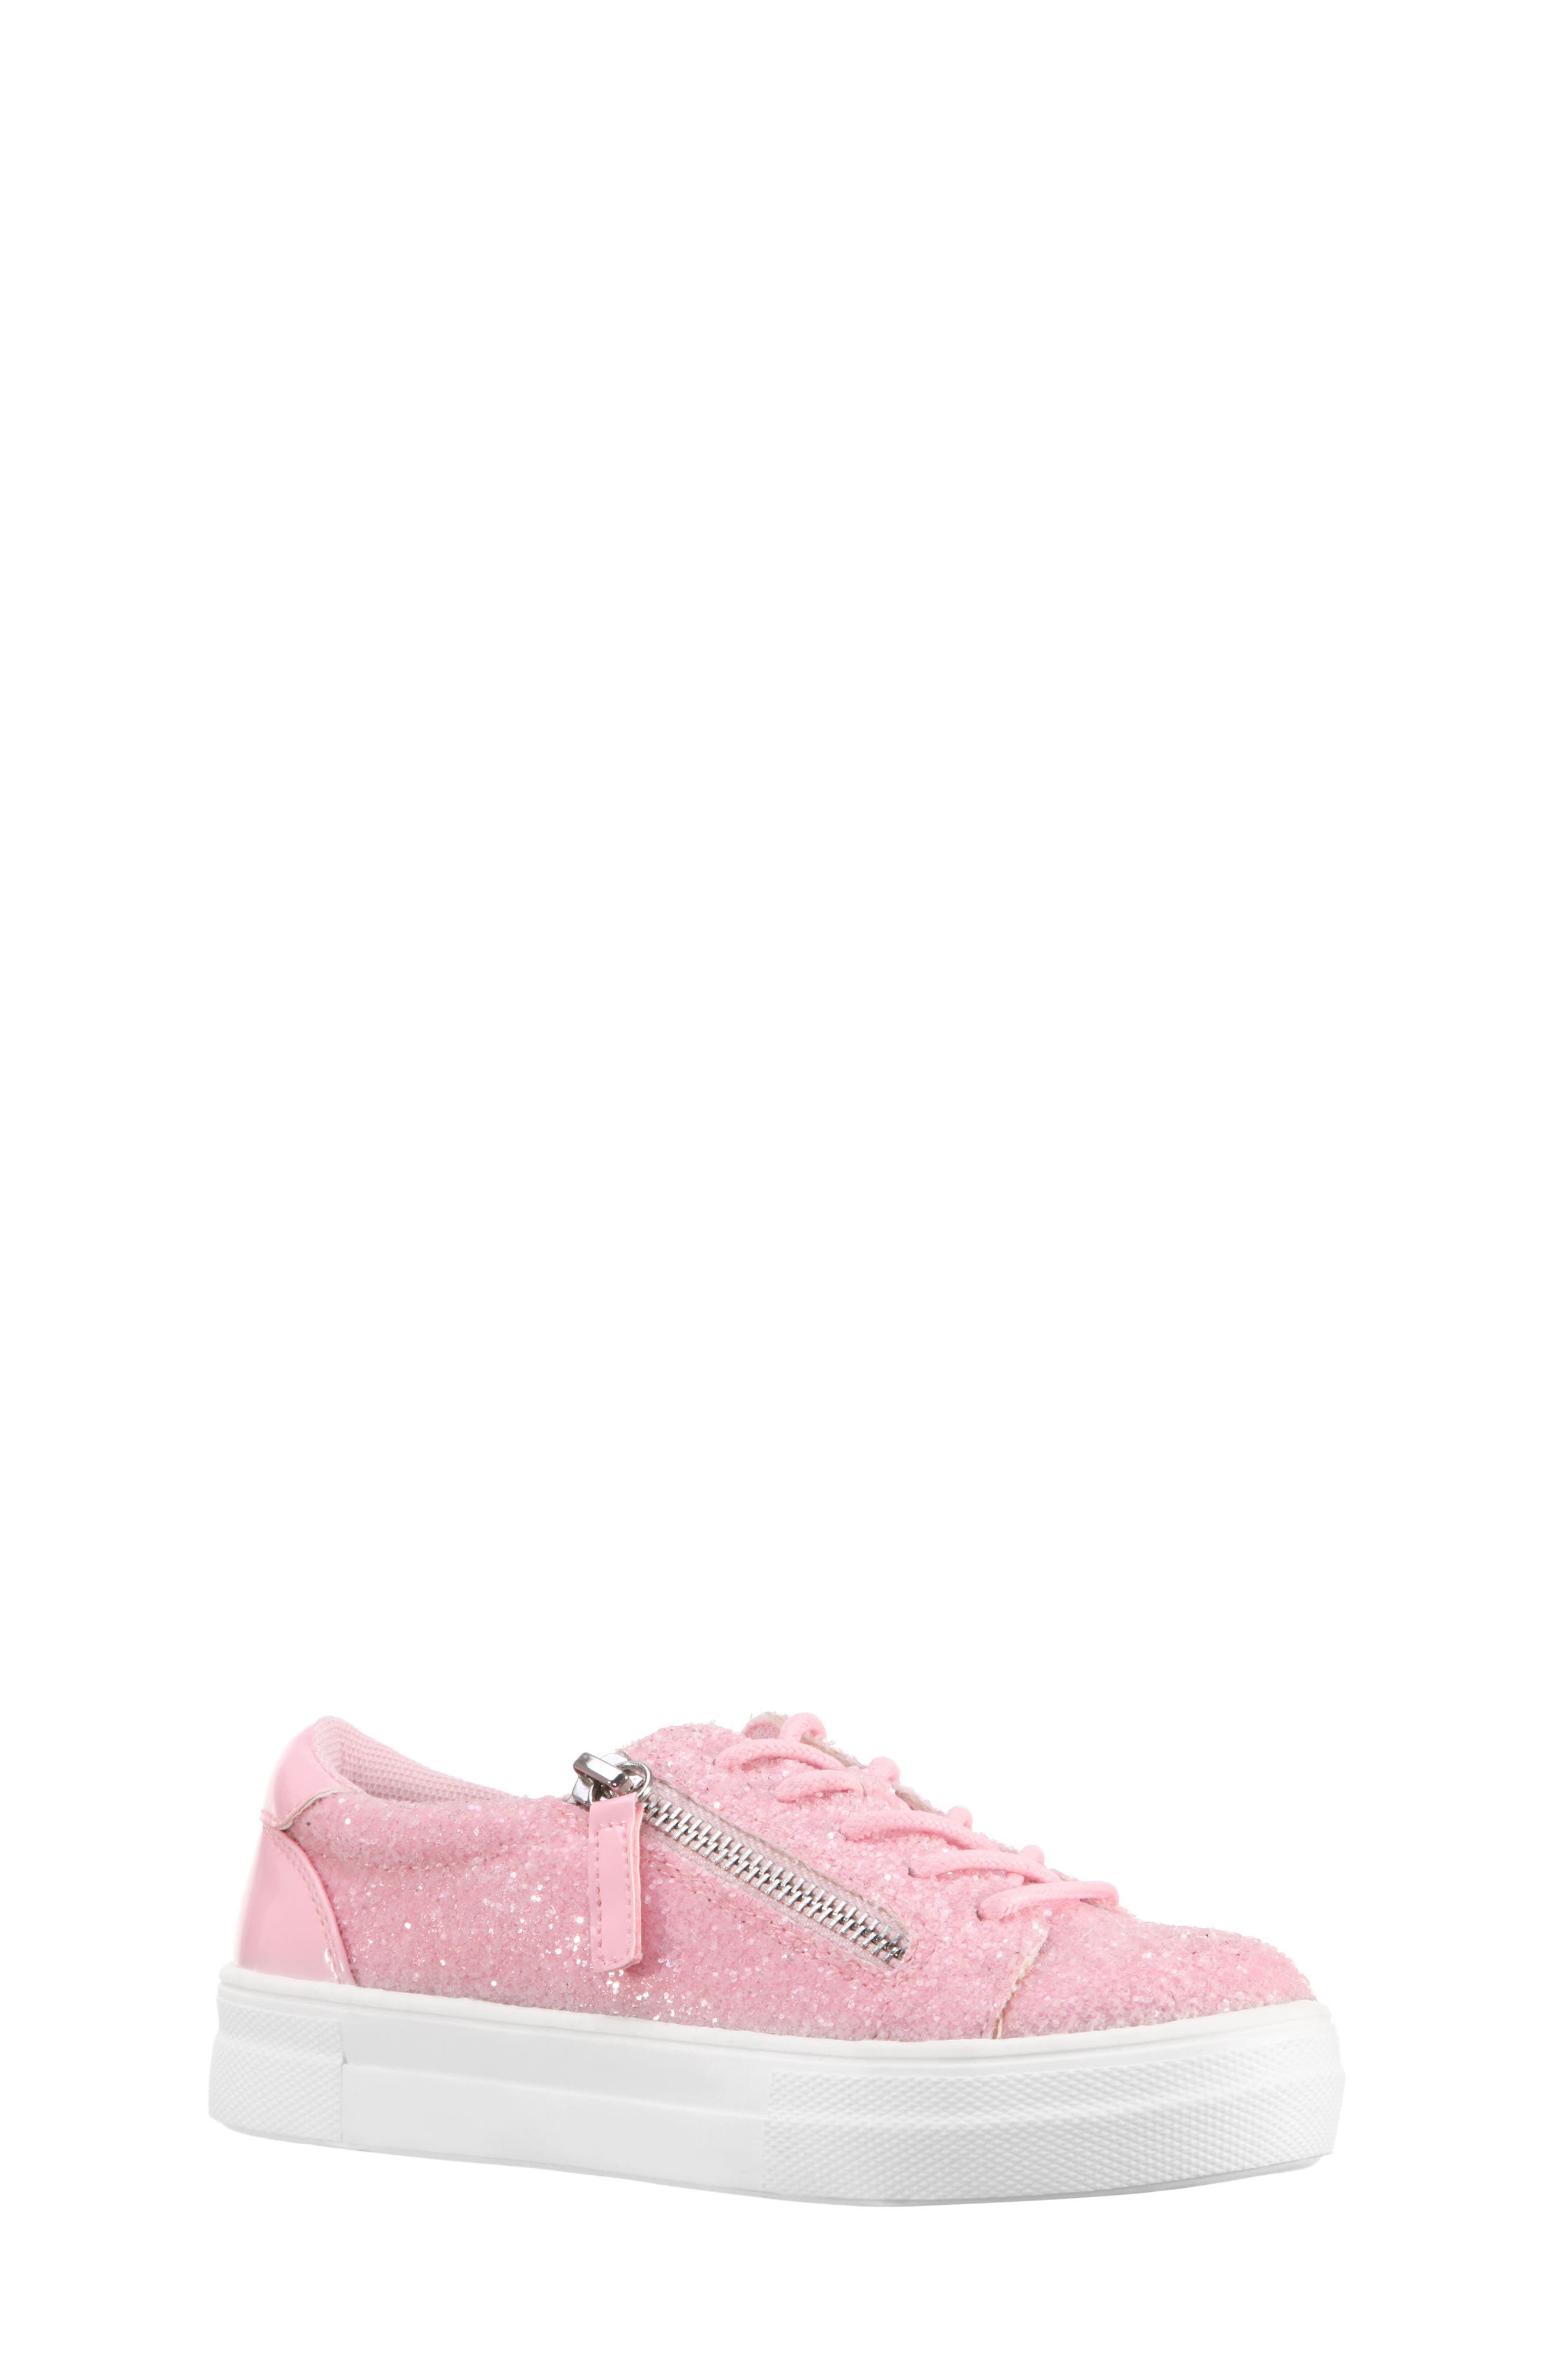 Jennalyn Glitter Sneaker,                         Main,                         color, Light Pink Chunky Glitter